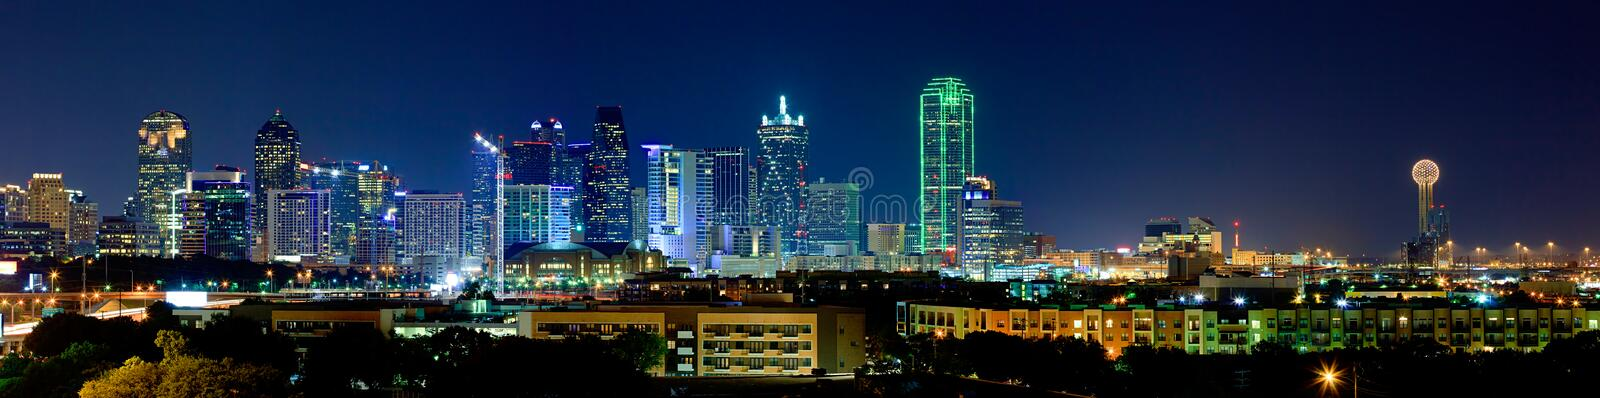 Vue de nuit sur le bel horizon de Dallas photos libres de droits